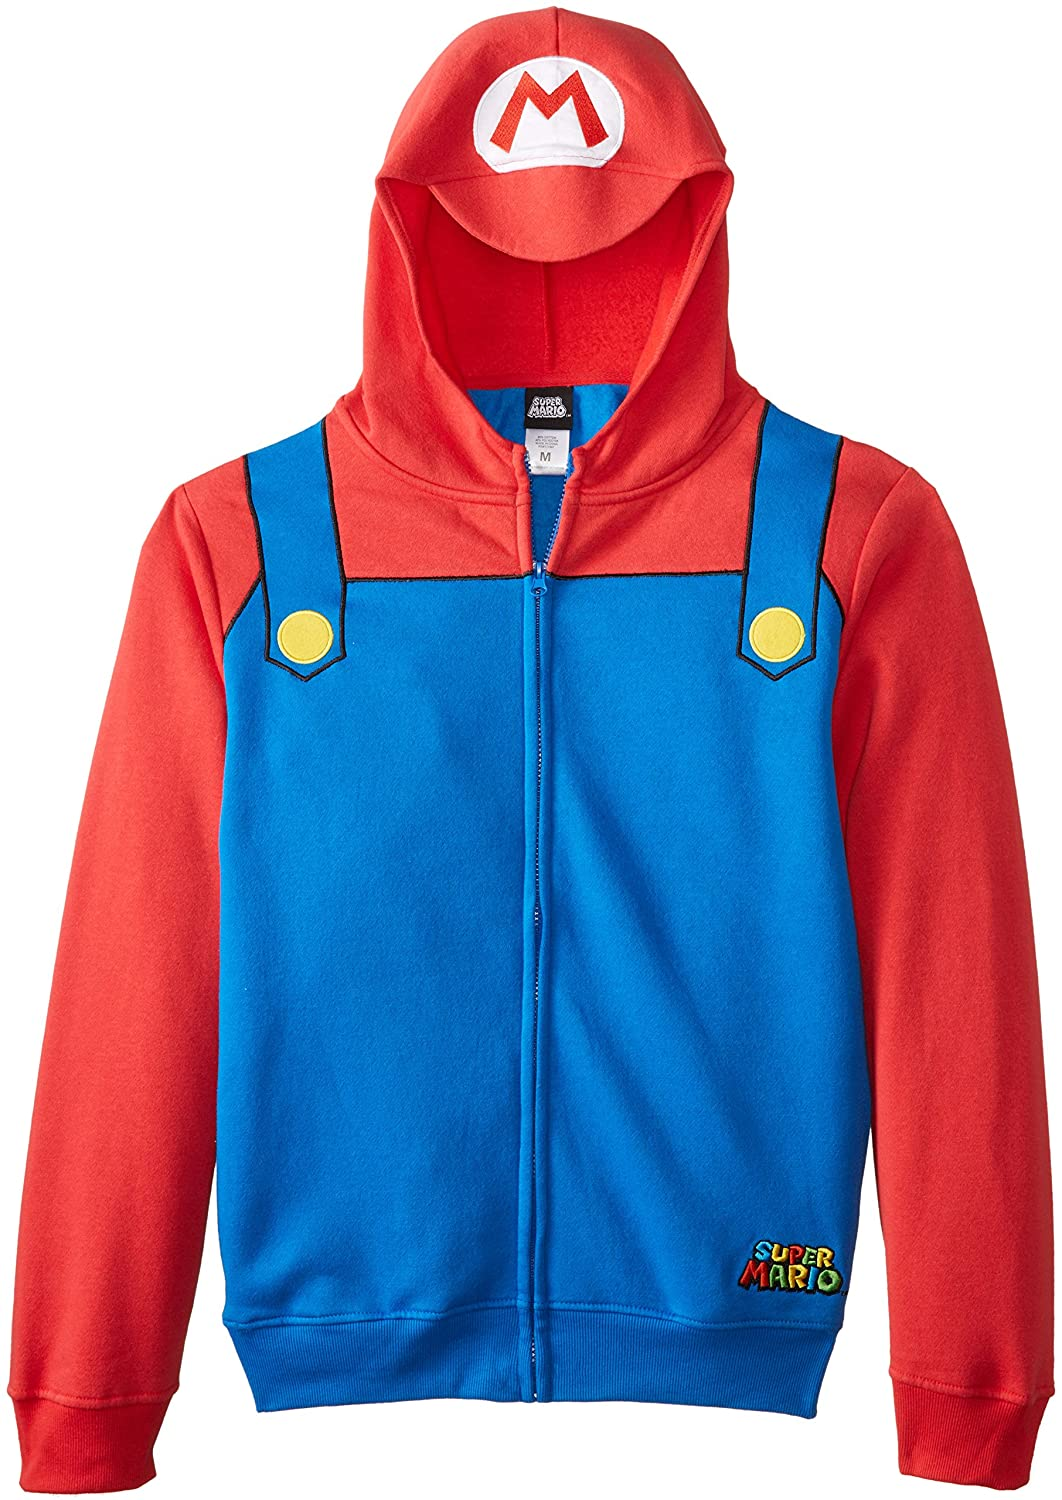 video game fancy dress Super Plumber Mario Brothers Adult Fancy Dress Costume Cosplay Party